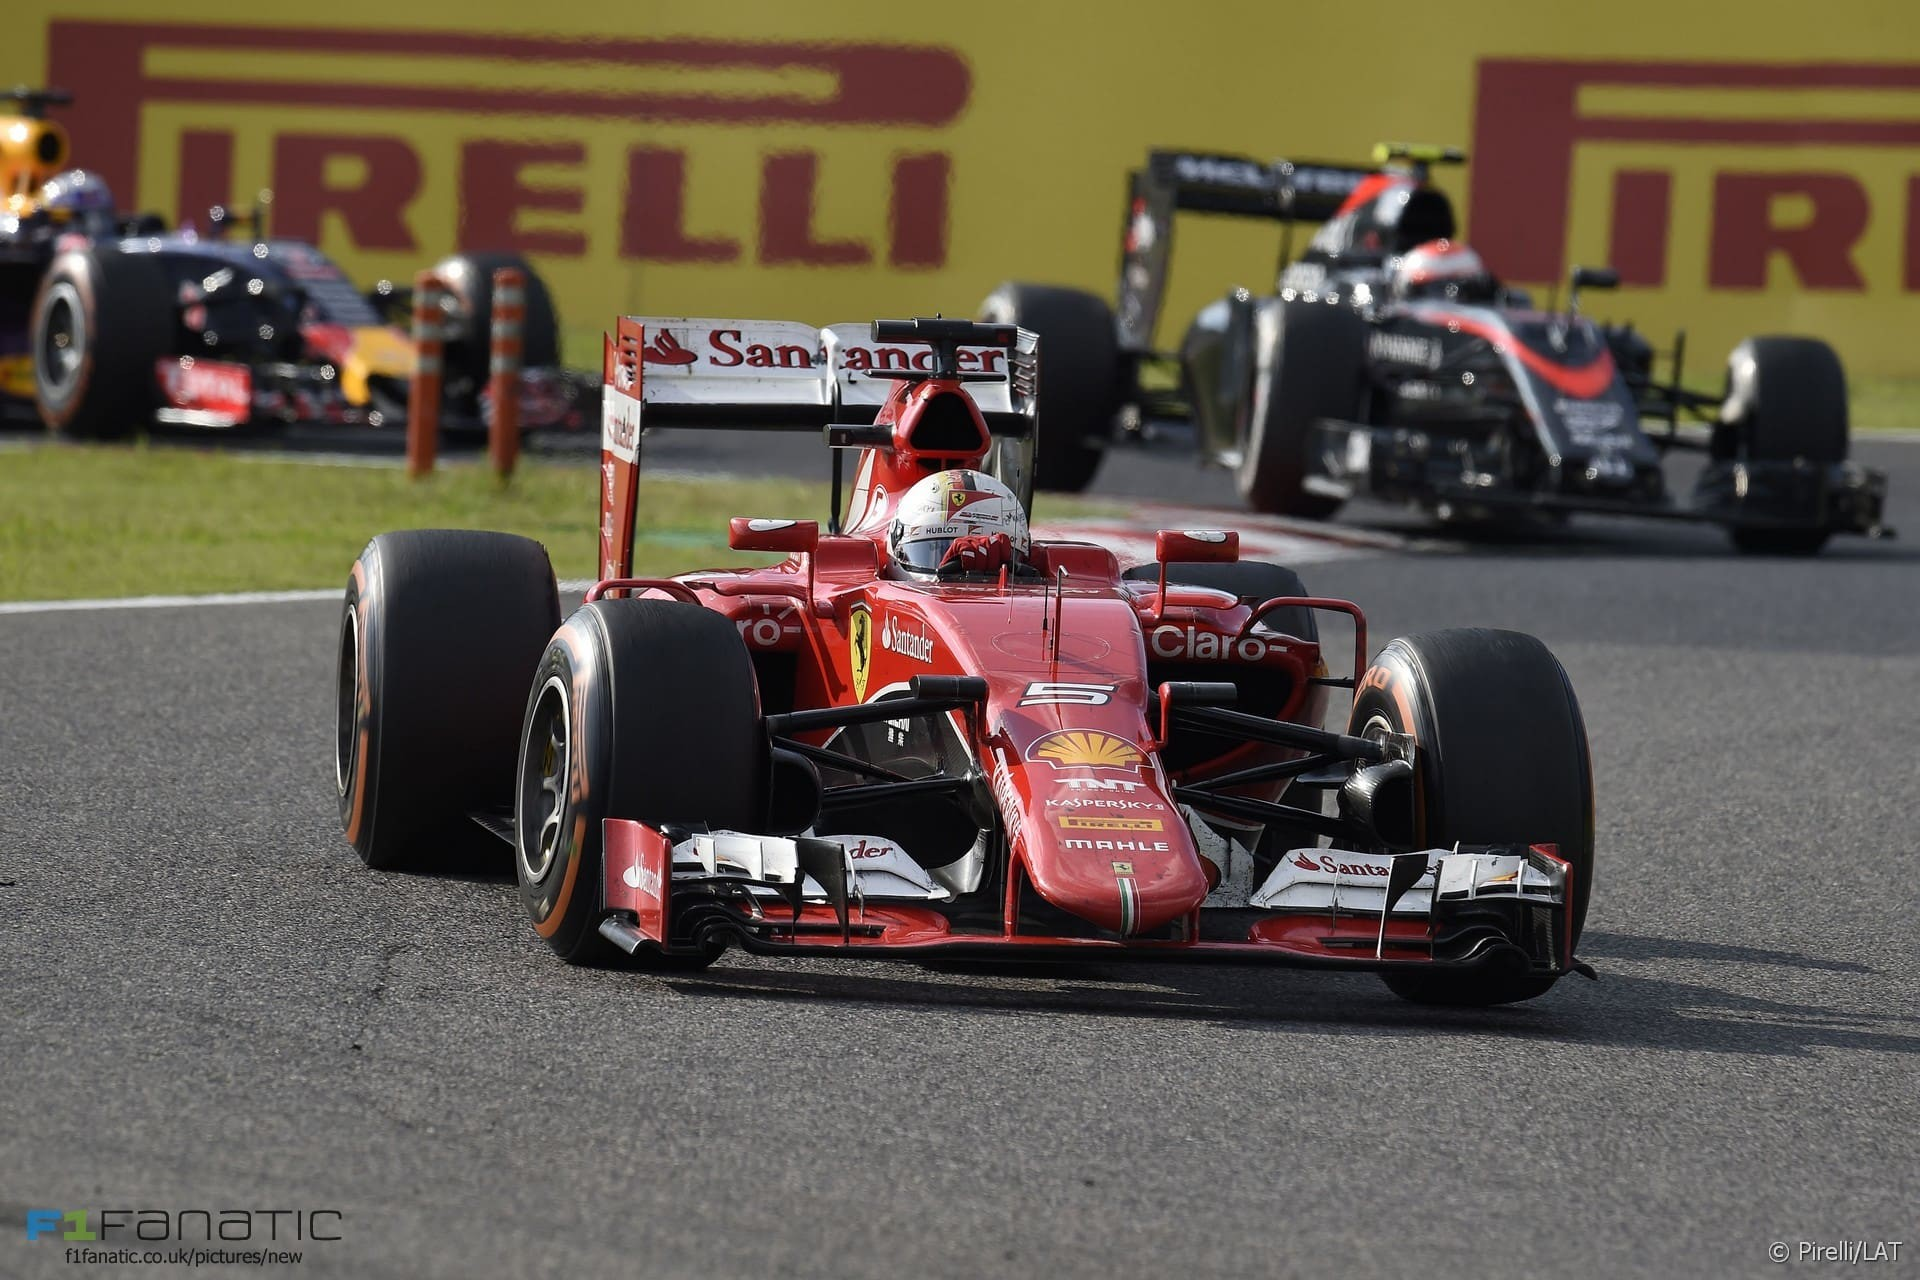 3rd and 4th place for Ferrari at the Japanese Grand Prix